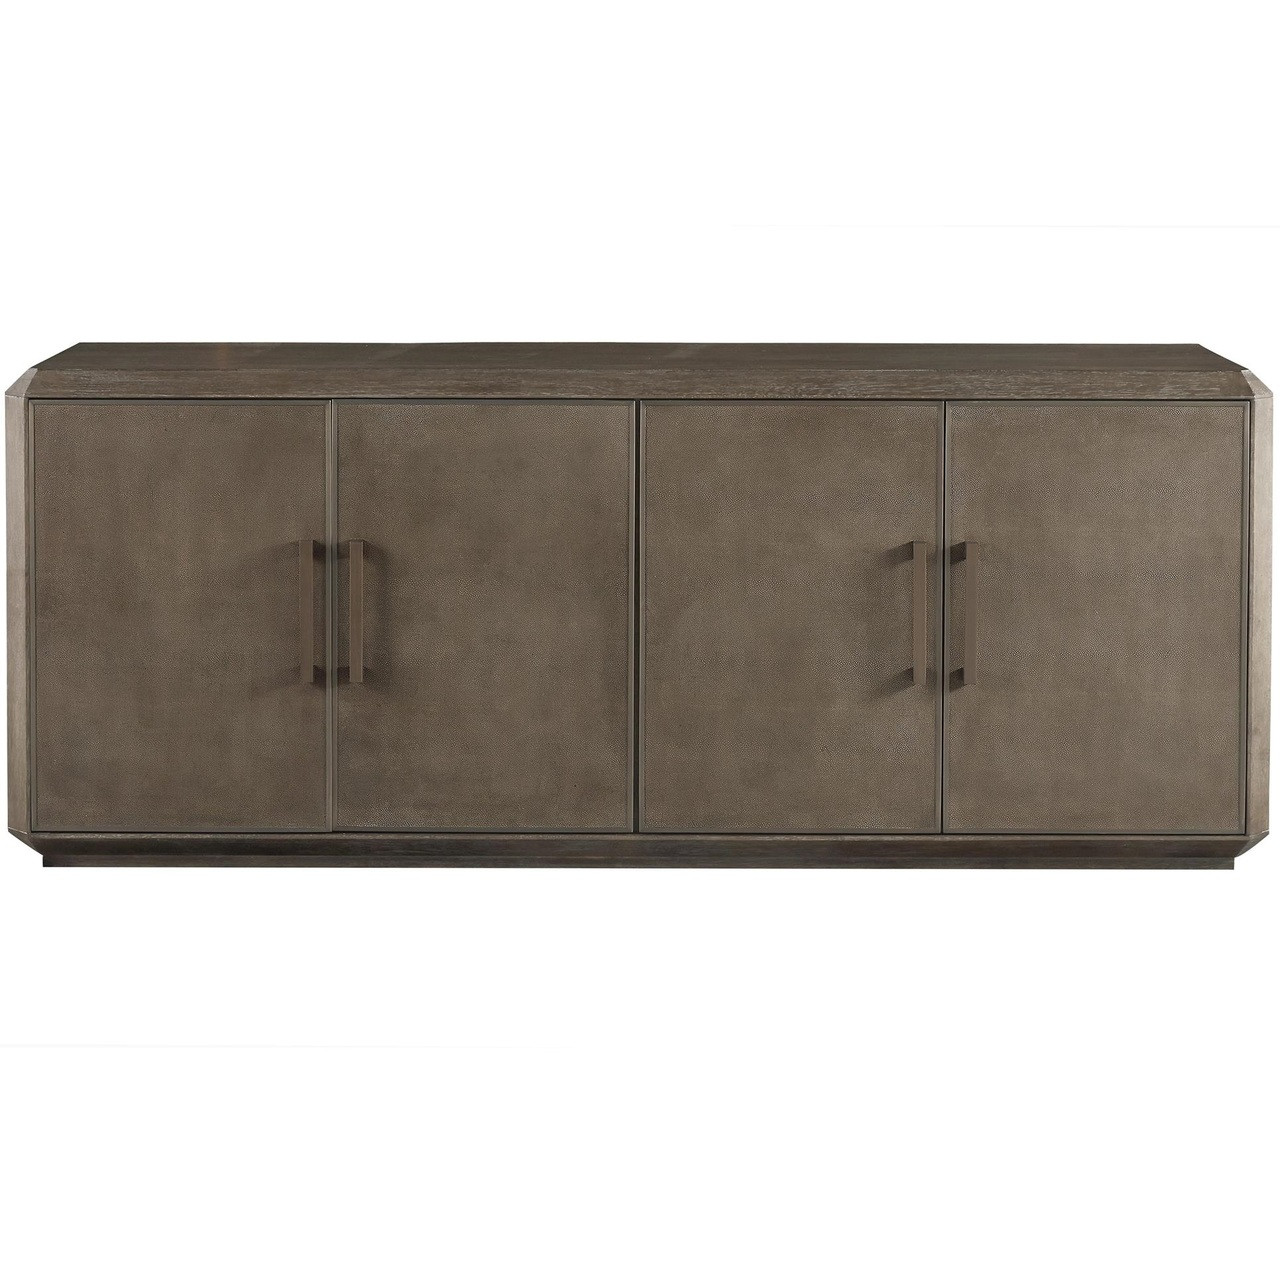 Portobello Modern Shagreen Panel 4-Door Credenza Sideboard on consoles and credenzas, made in usa modern credenzas, modern sideboards with sliding door, country style credenzas, industrial modern credenzas, post modern credenzas, modern sideboards and hutches,